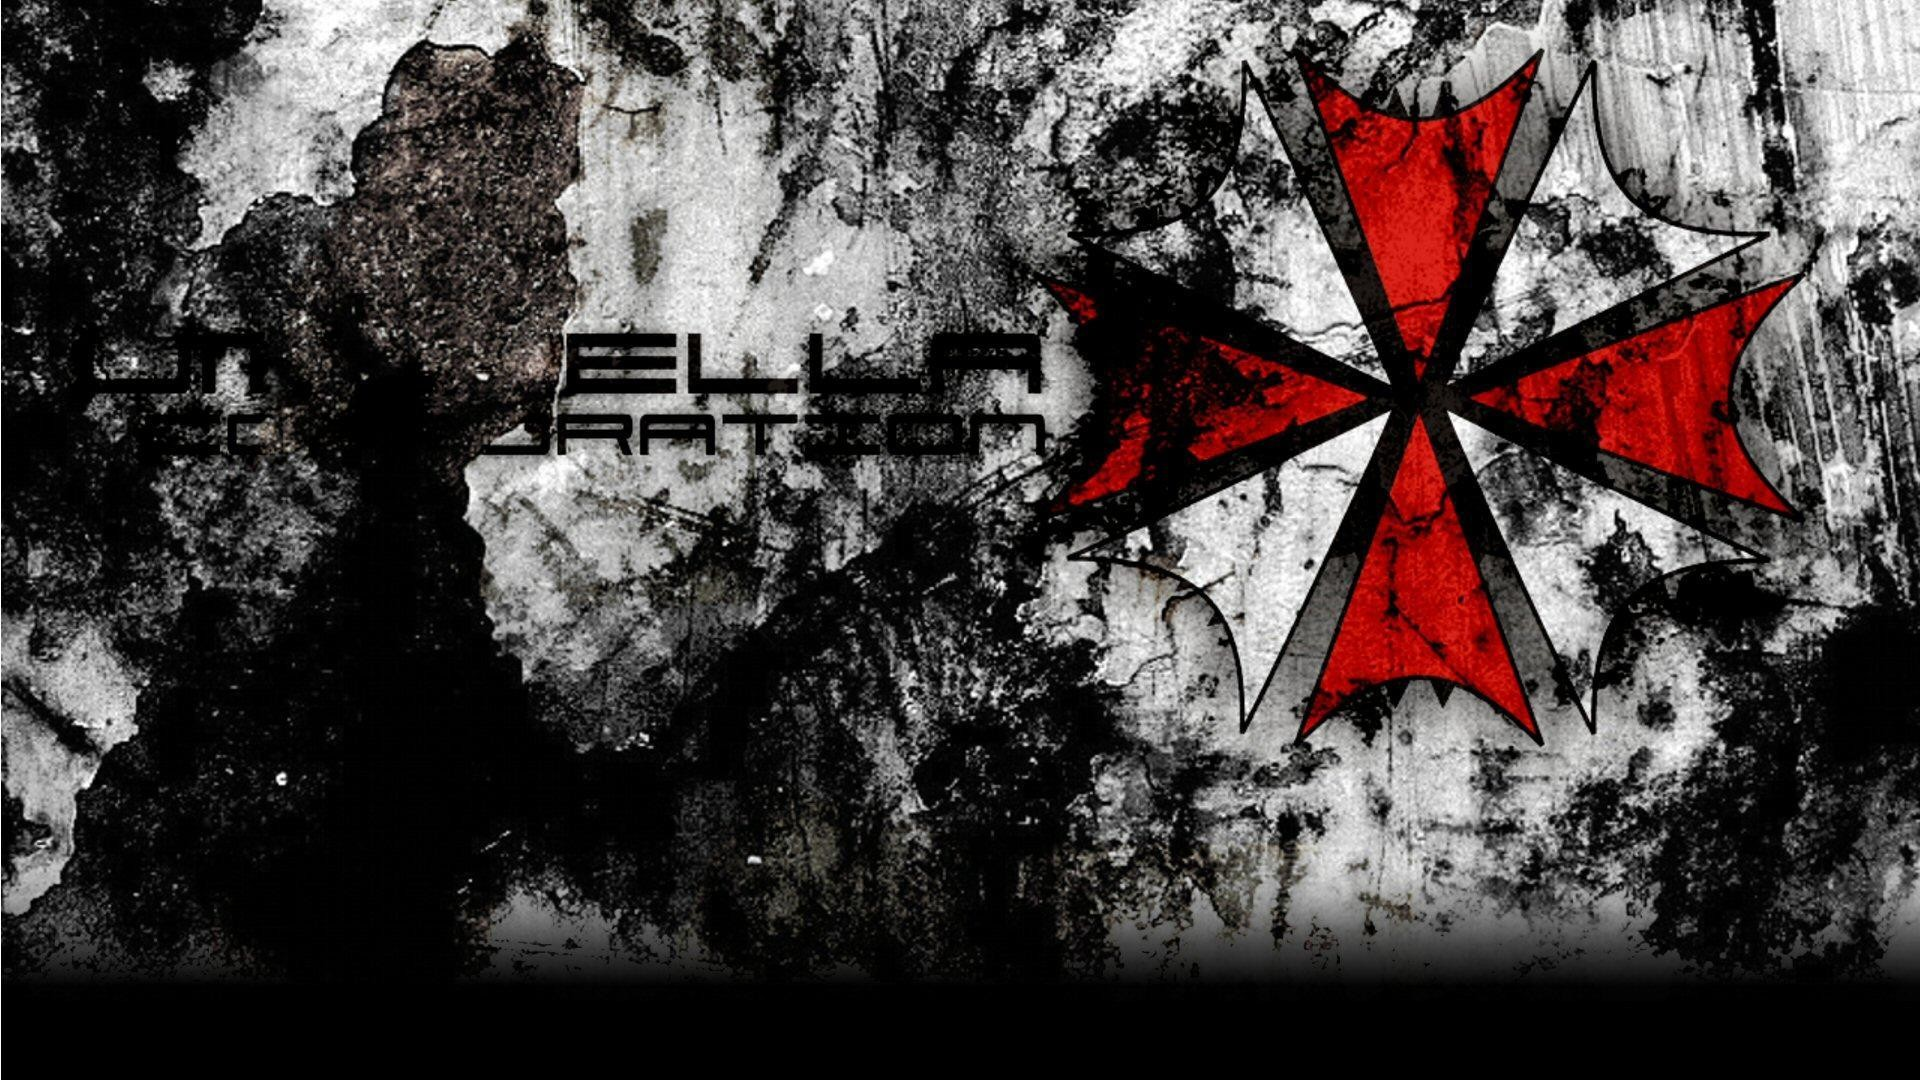 Related Wallpapers. Company Umbrella Corporation